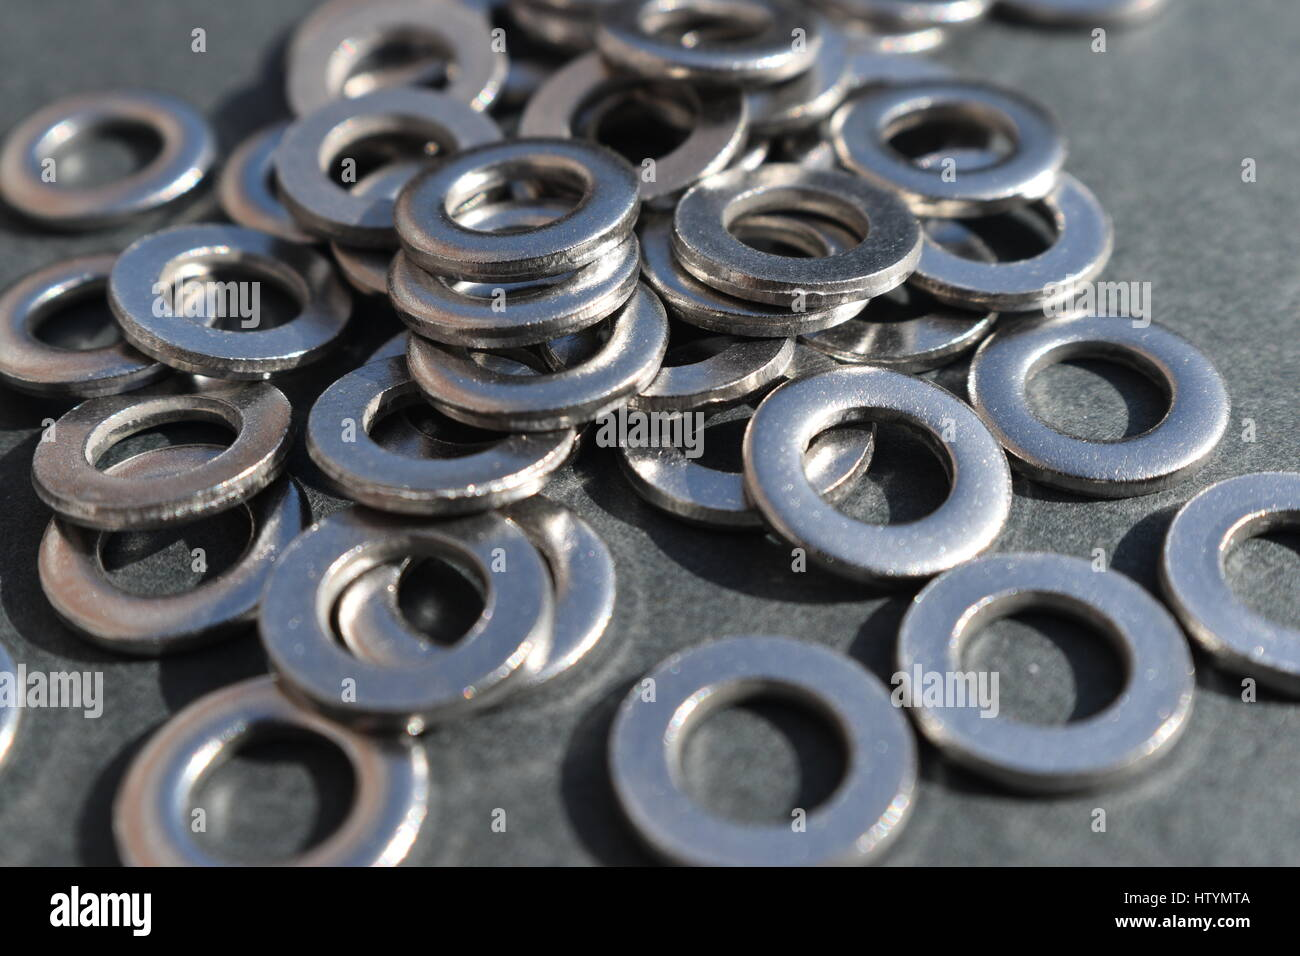 Hardware: stainless steel flat washers - Stock Image